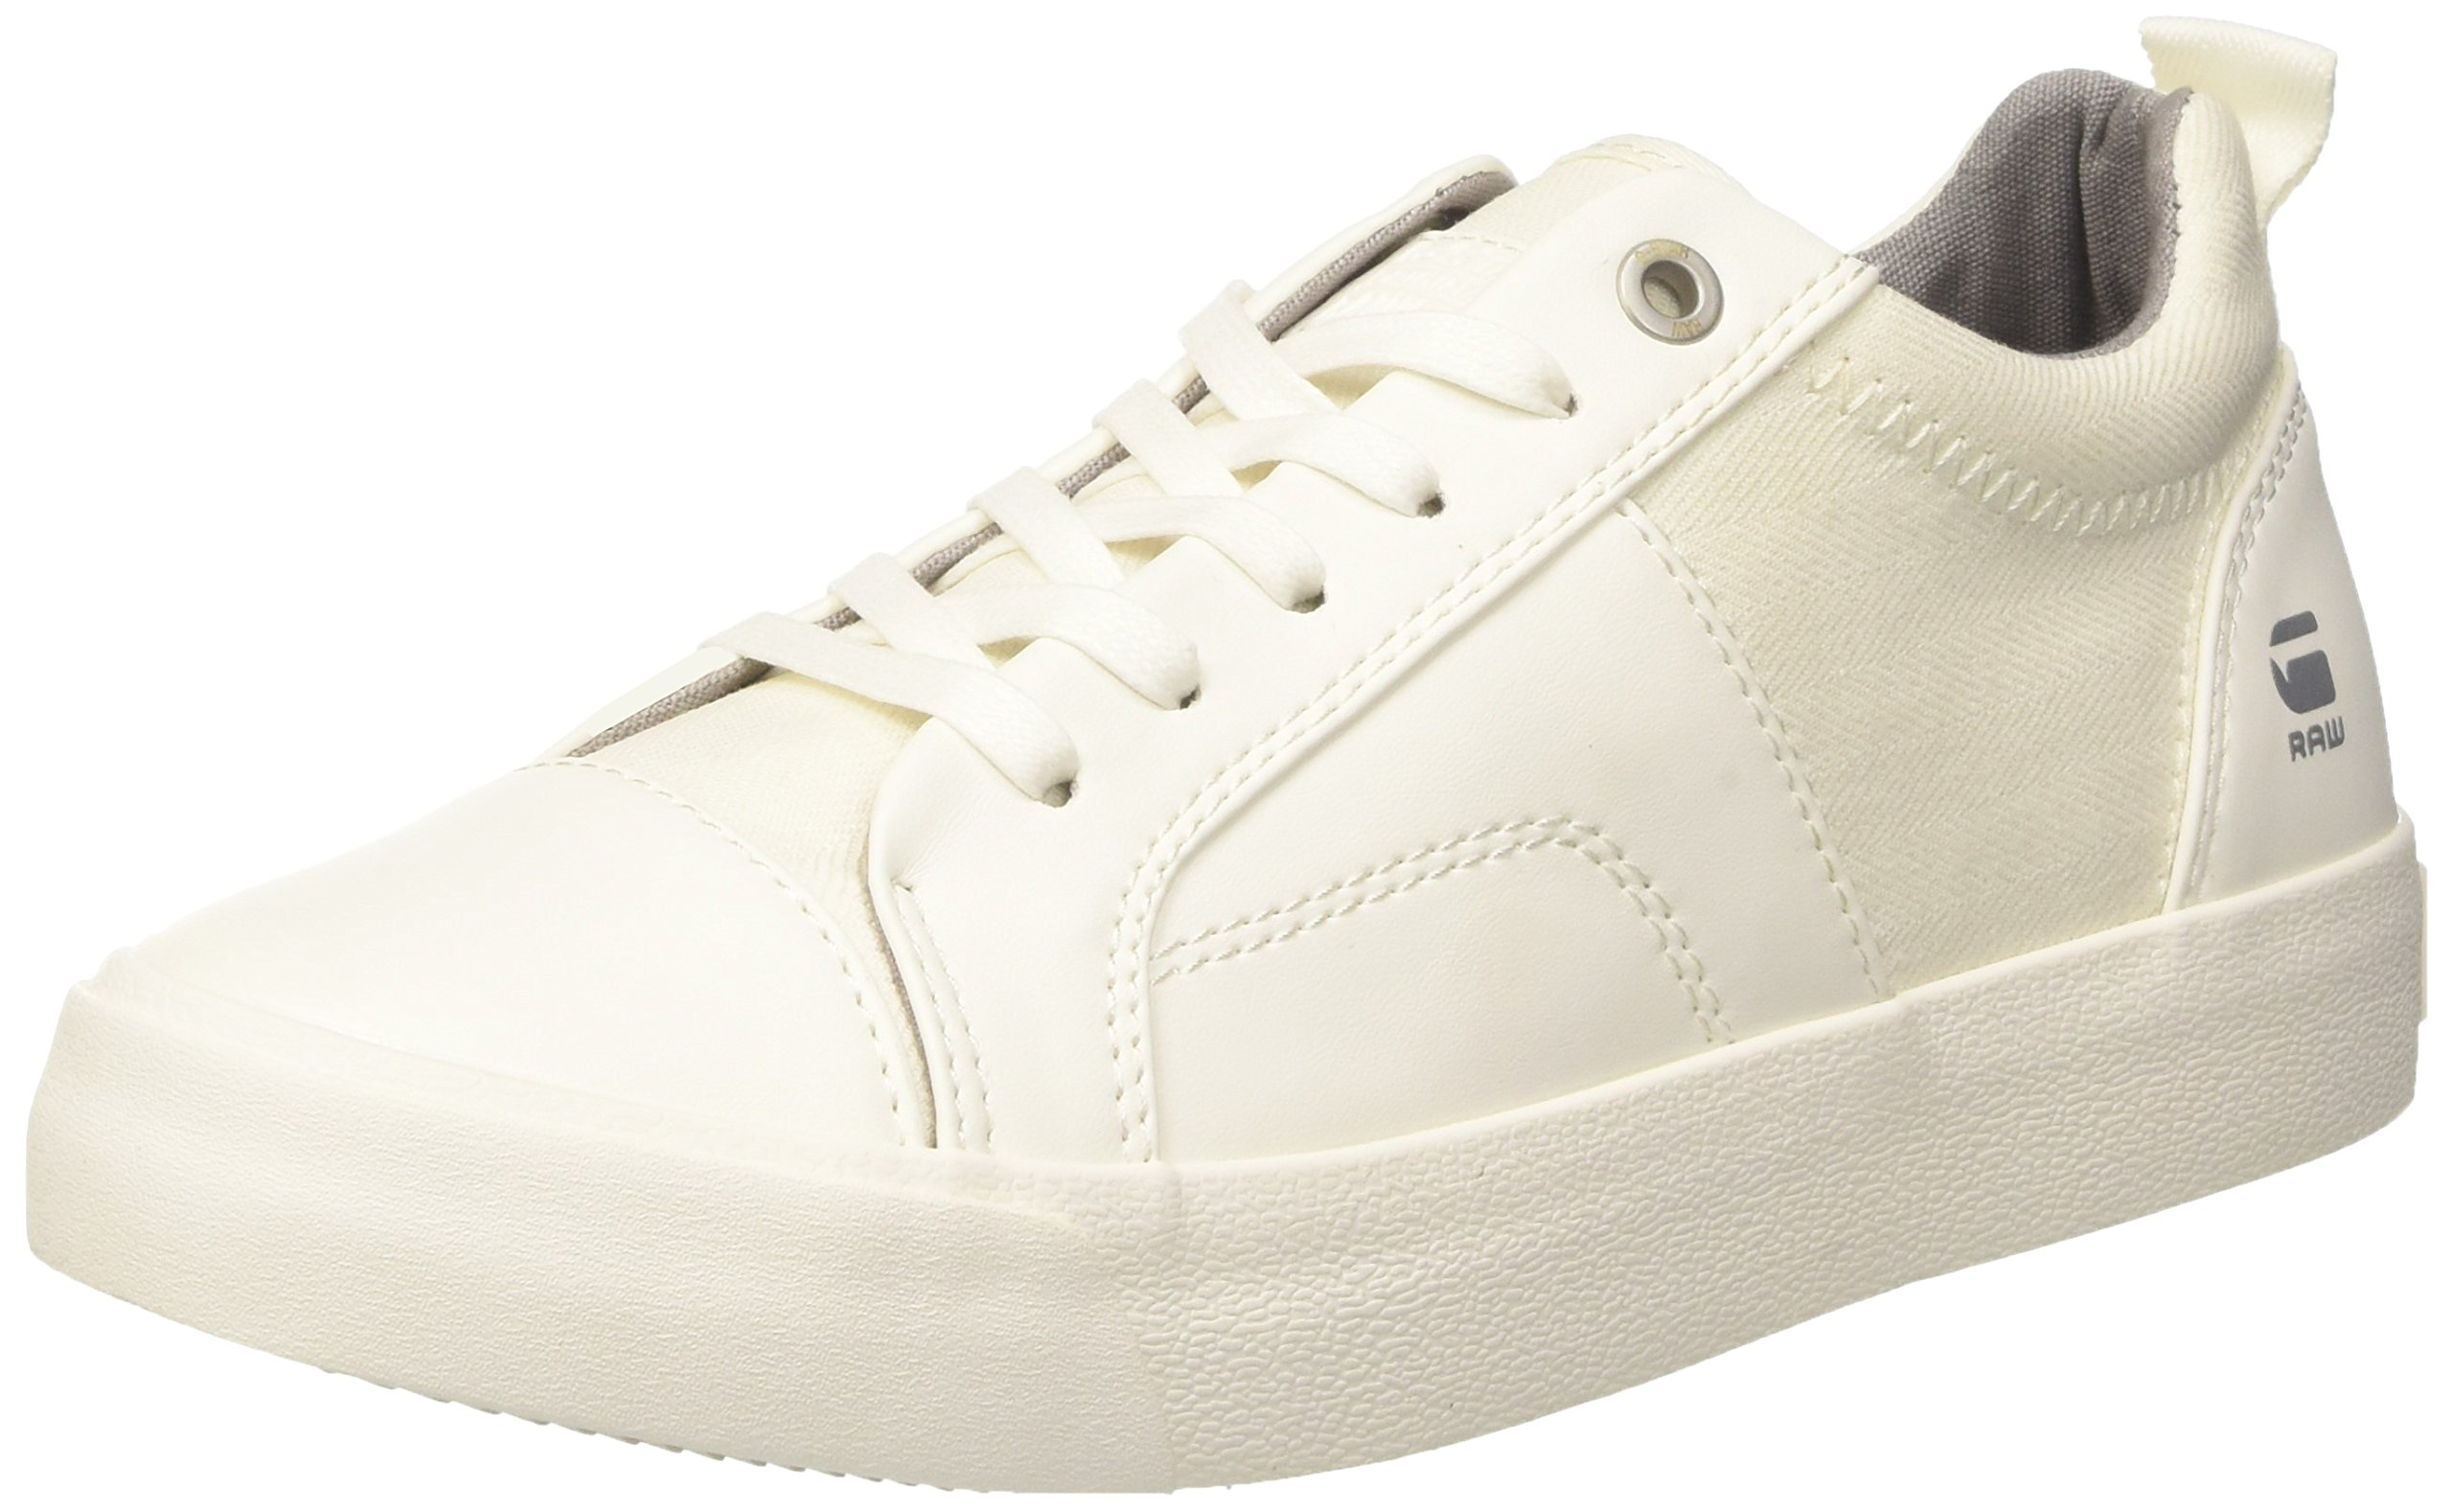 6166226be5090 Amazon.it  G-Star RAW  Scarpe